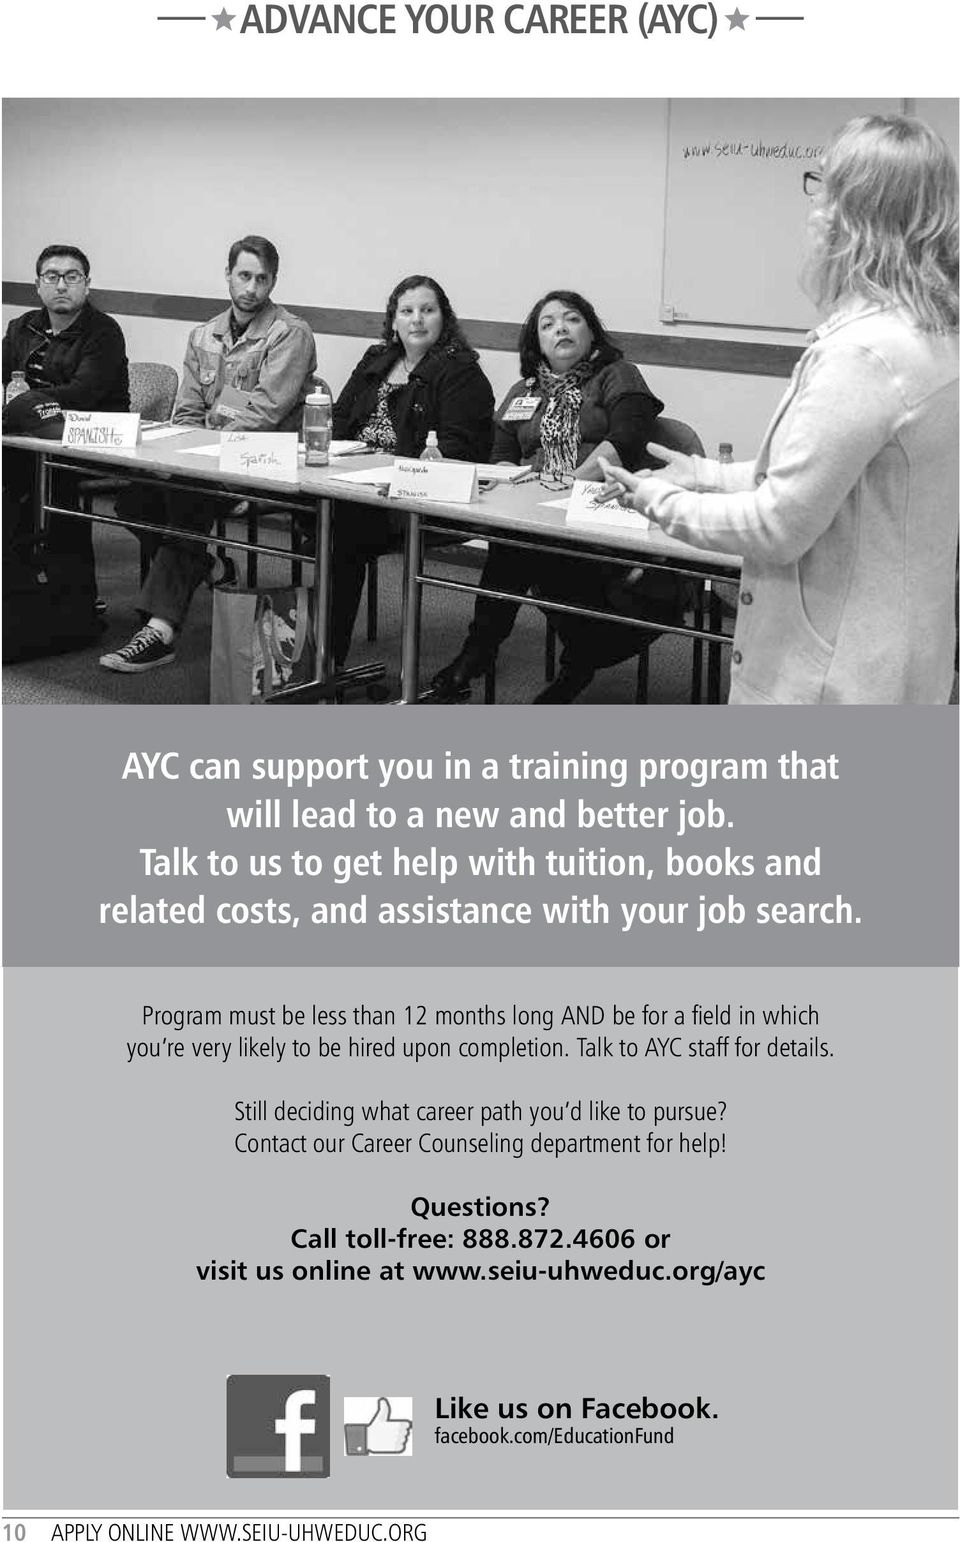 Program must be less than 12 months long AND be for a field in which you re very likely to be hired upon completion. Talk to AYC staff for details.